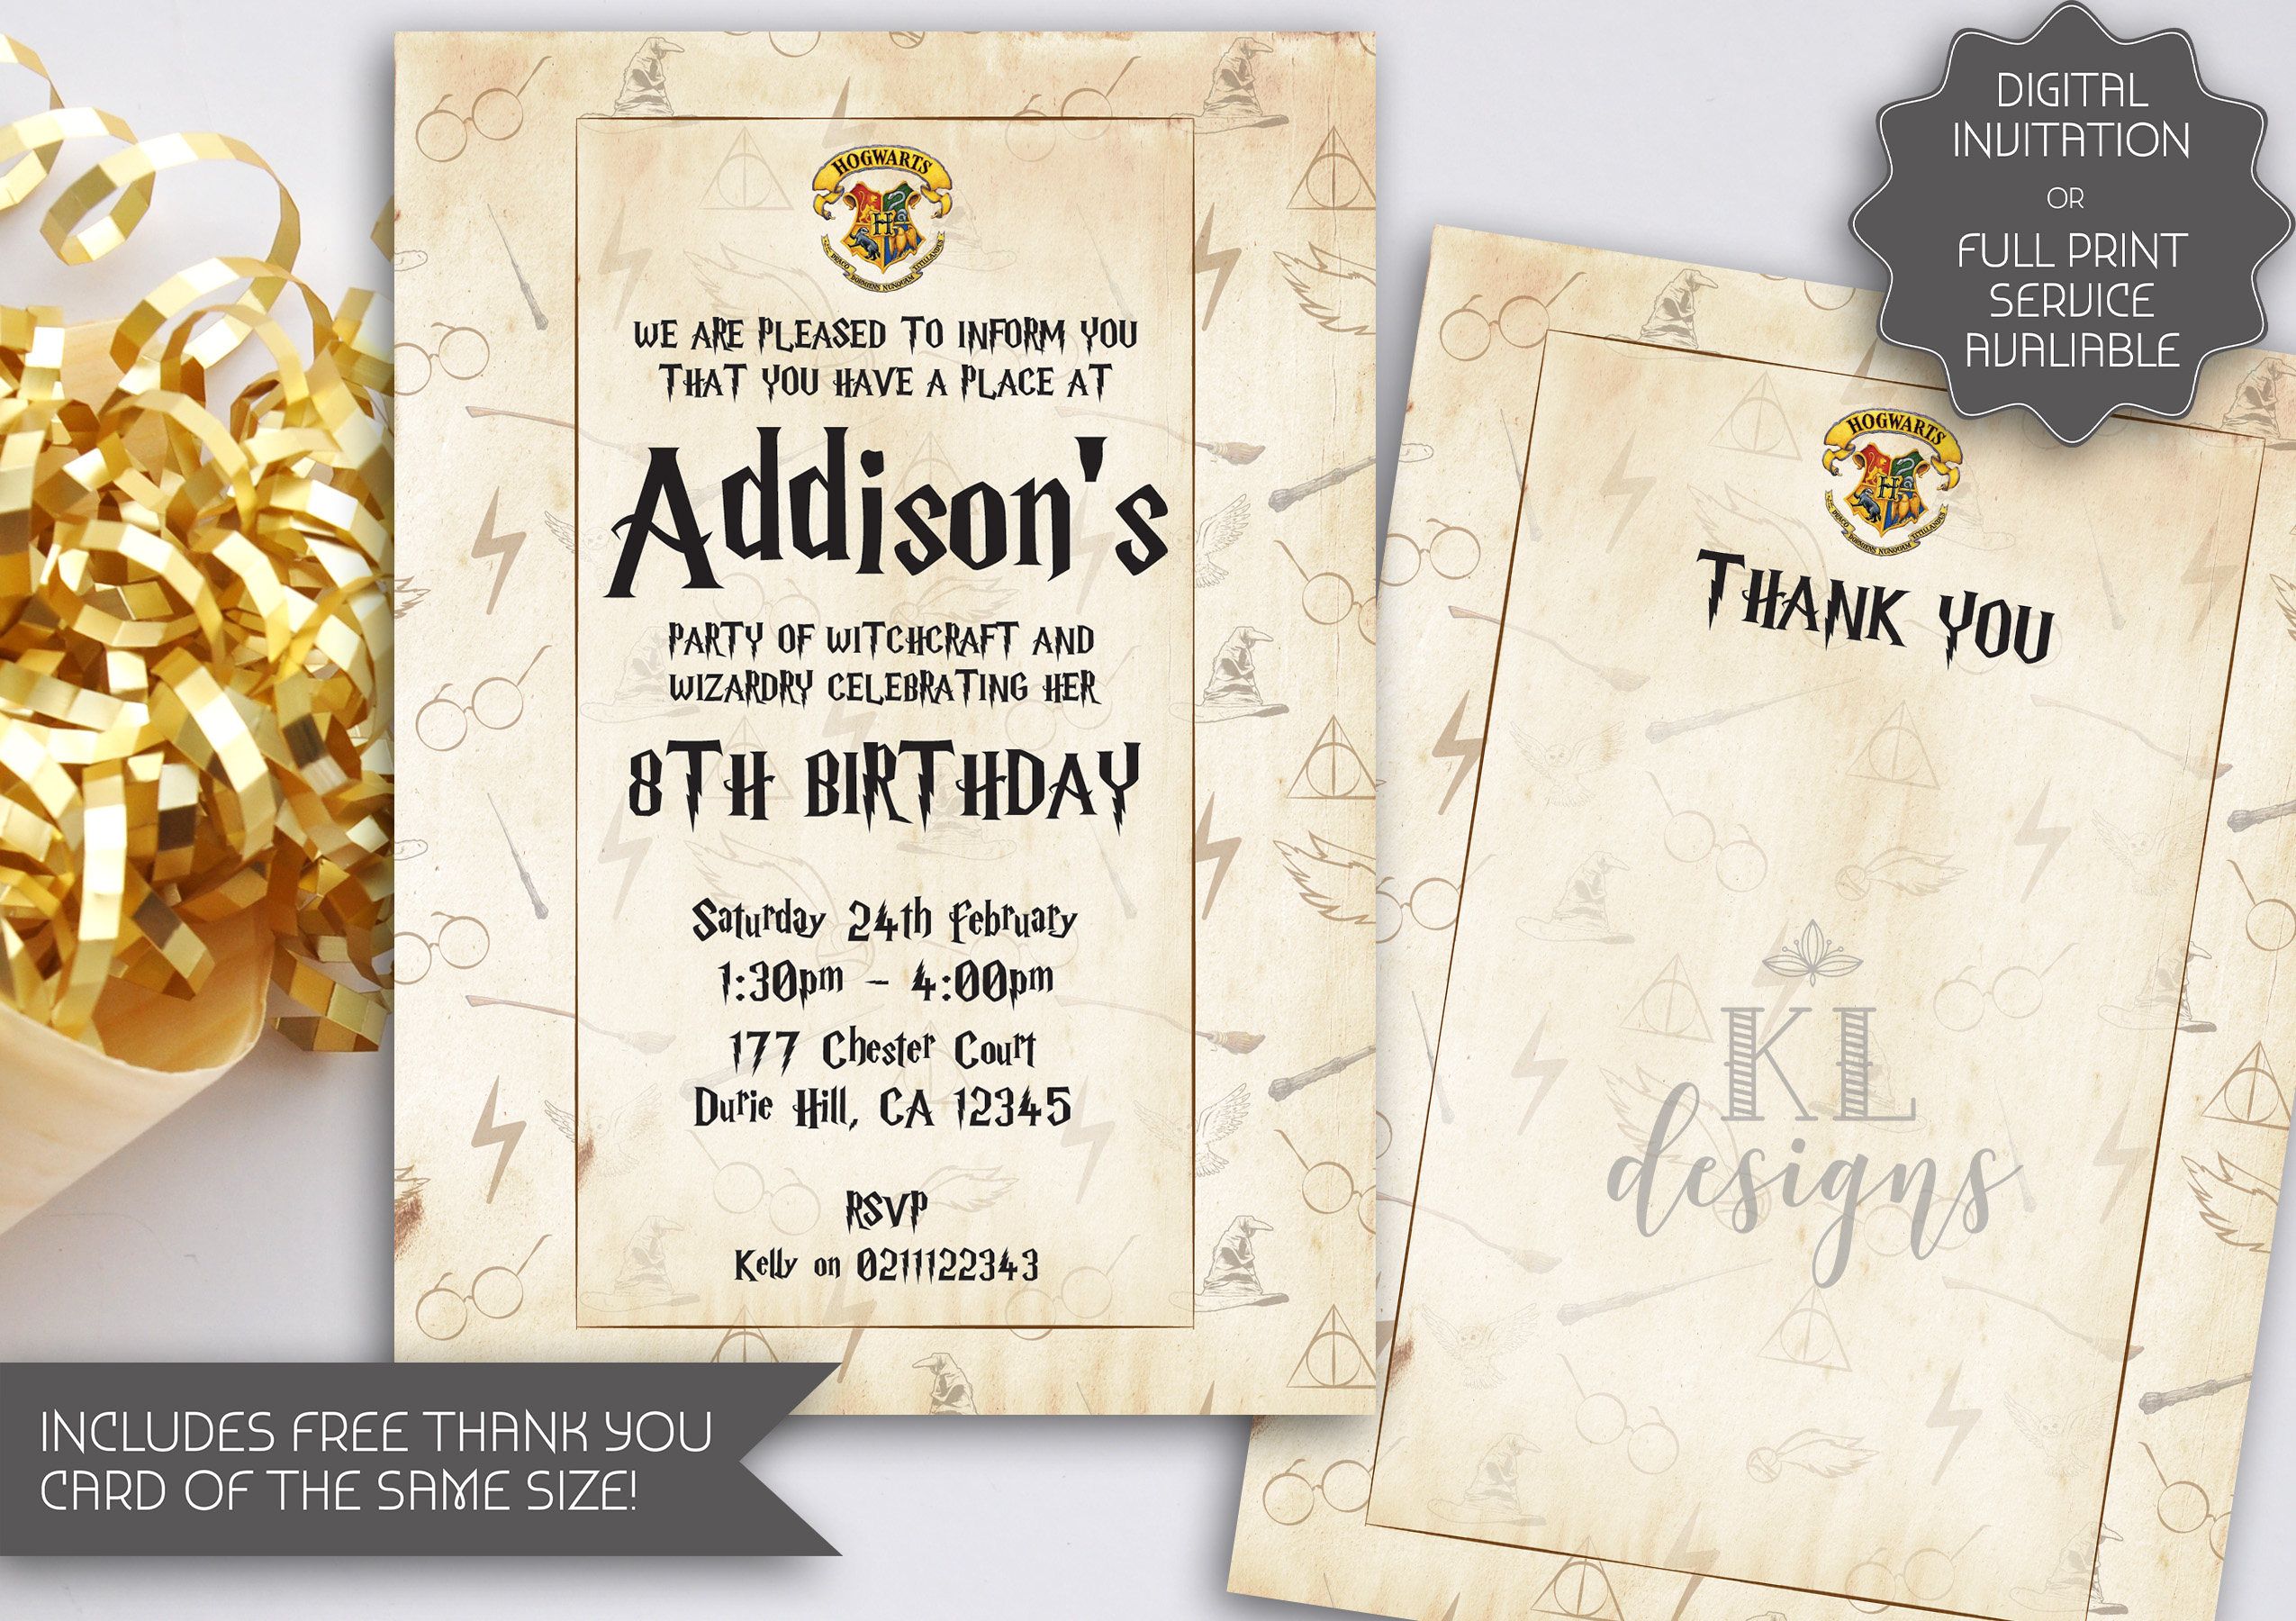 Harry potter invitation harry potter birthday invitation harry potter invitation harry potter birthday invitation printable harry potter invitation harry potter party harry potter 095 stopboris Choice Image